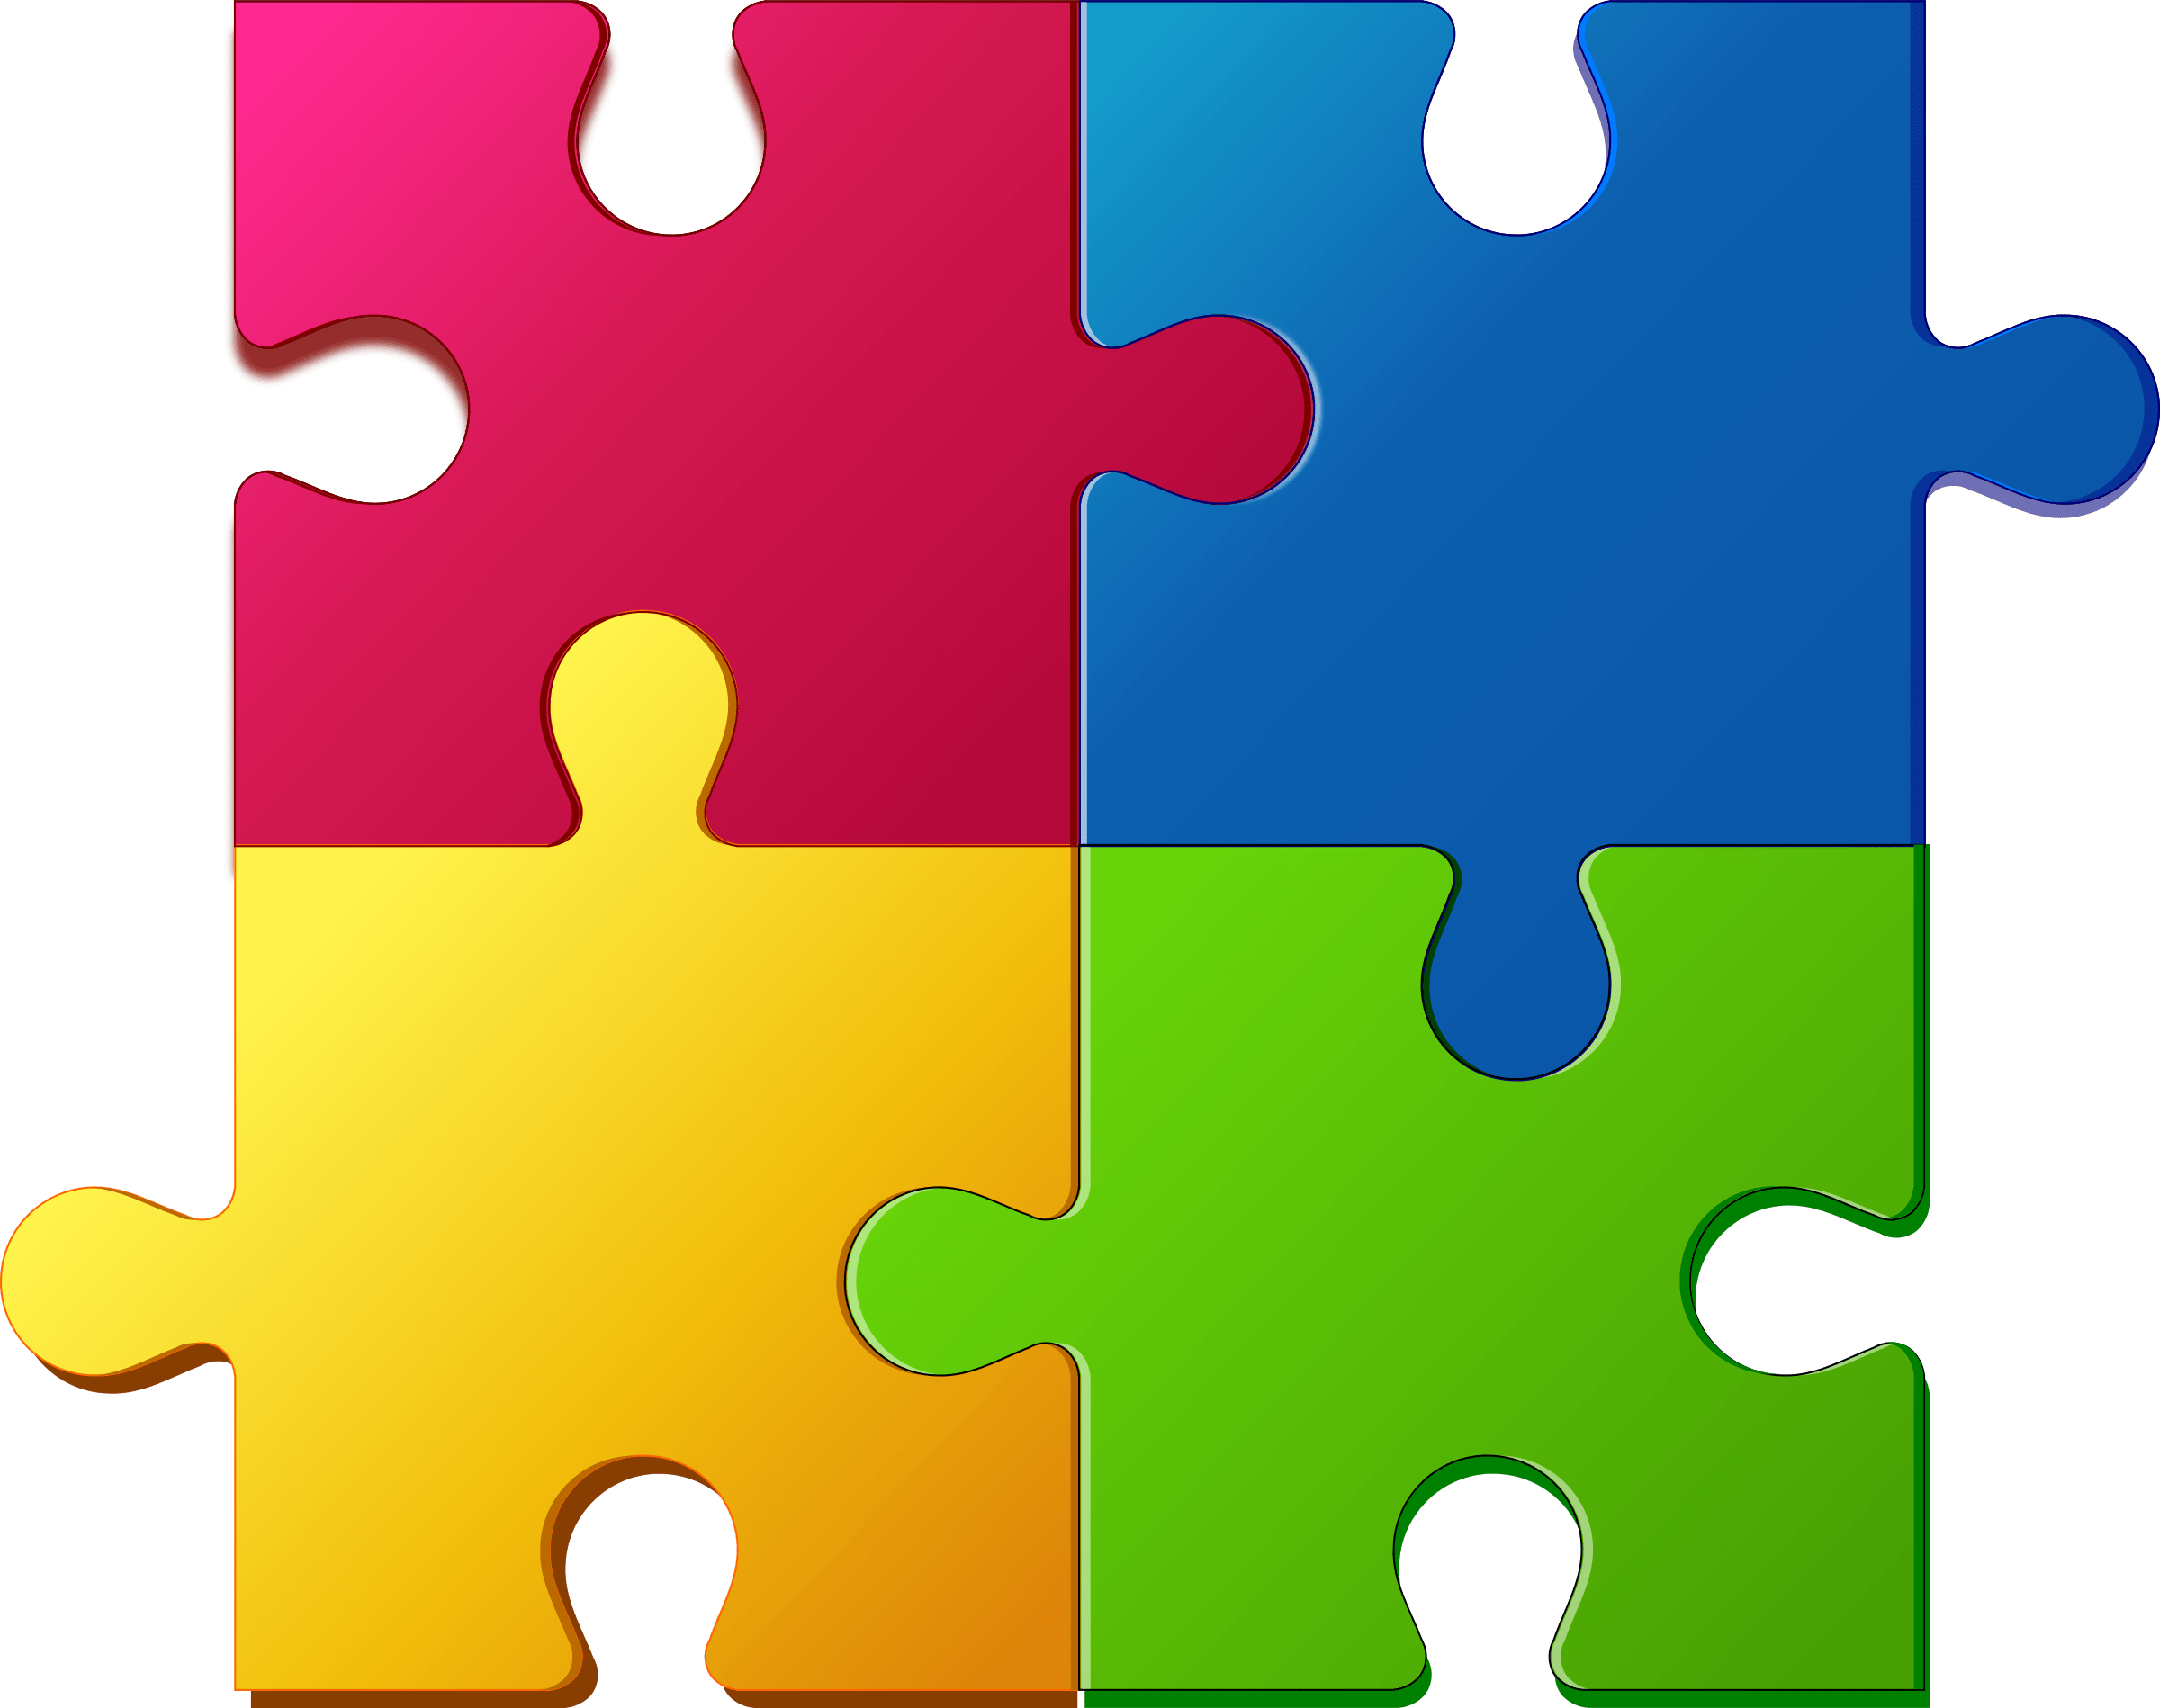 Missing puzzle piece png. The by amy parsons